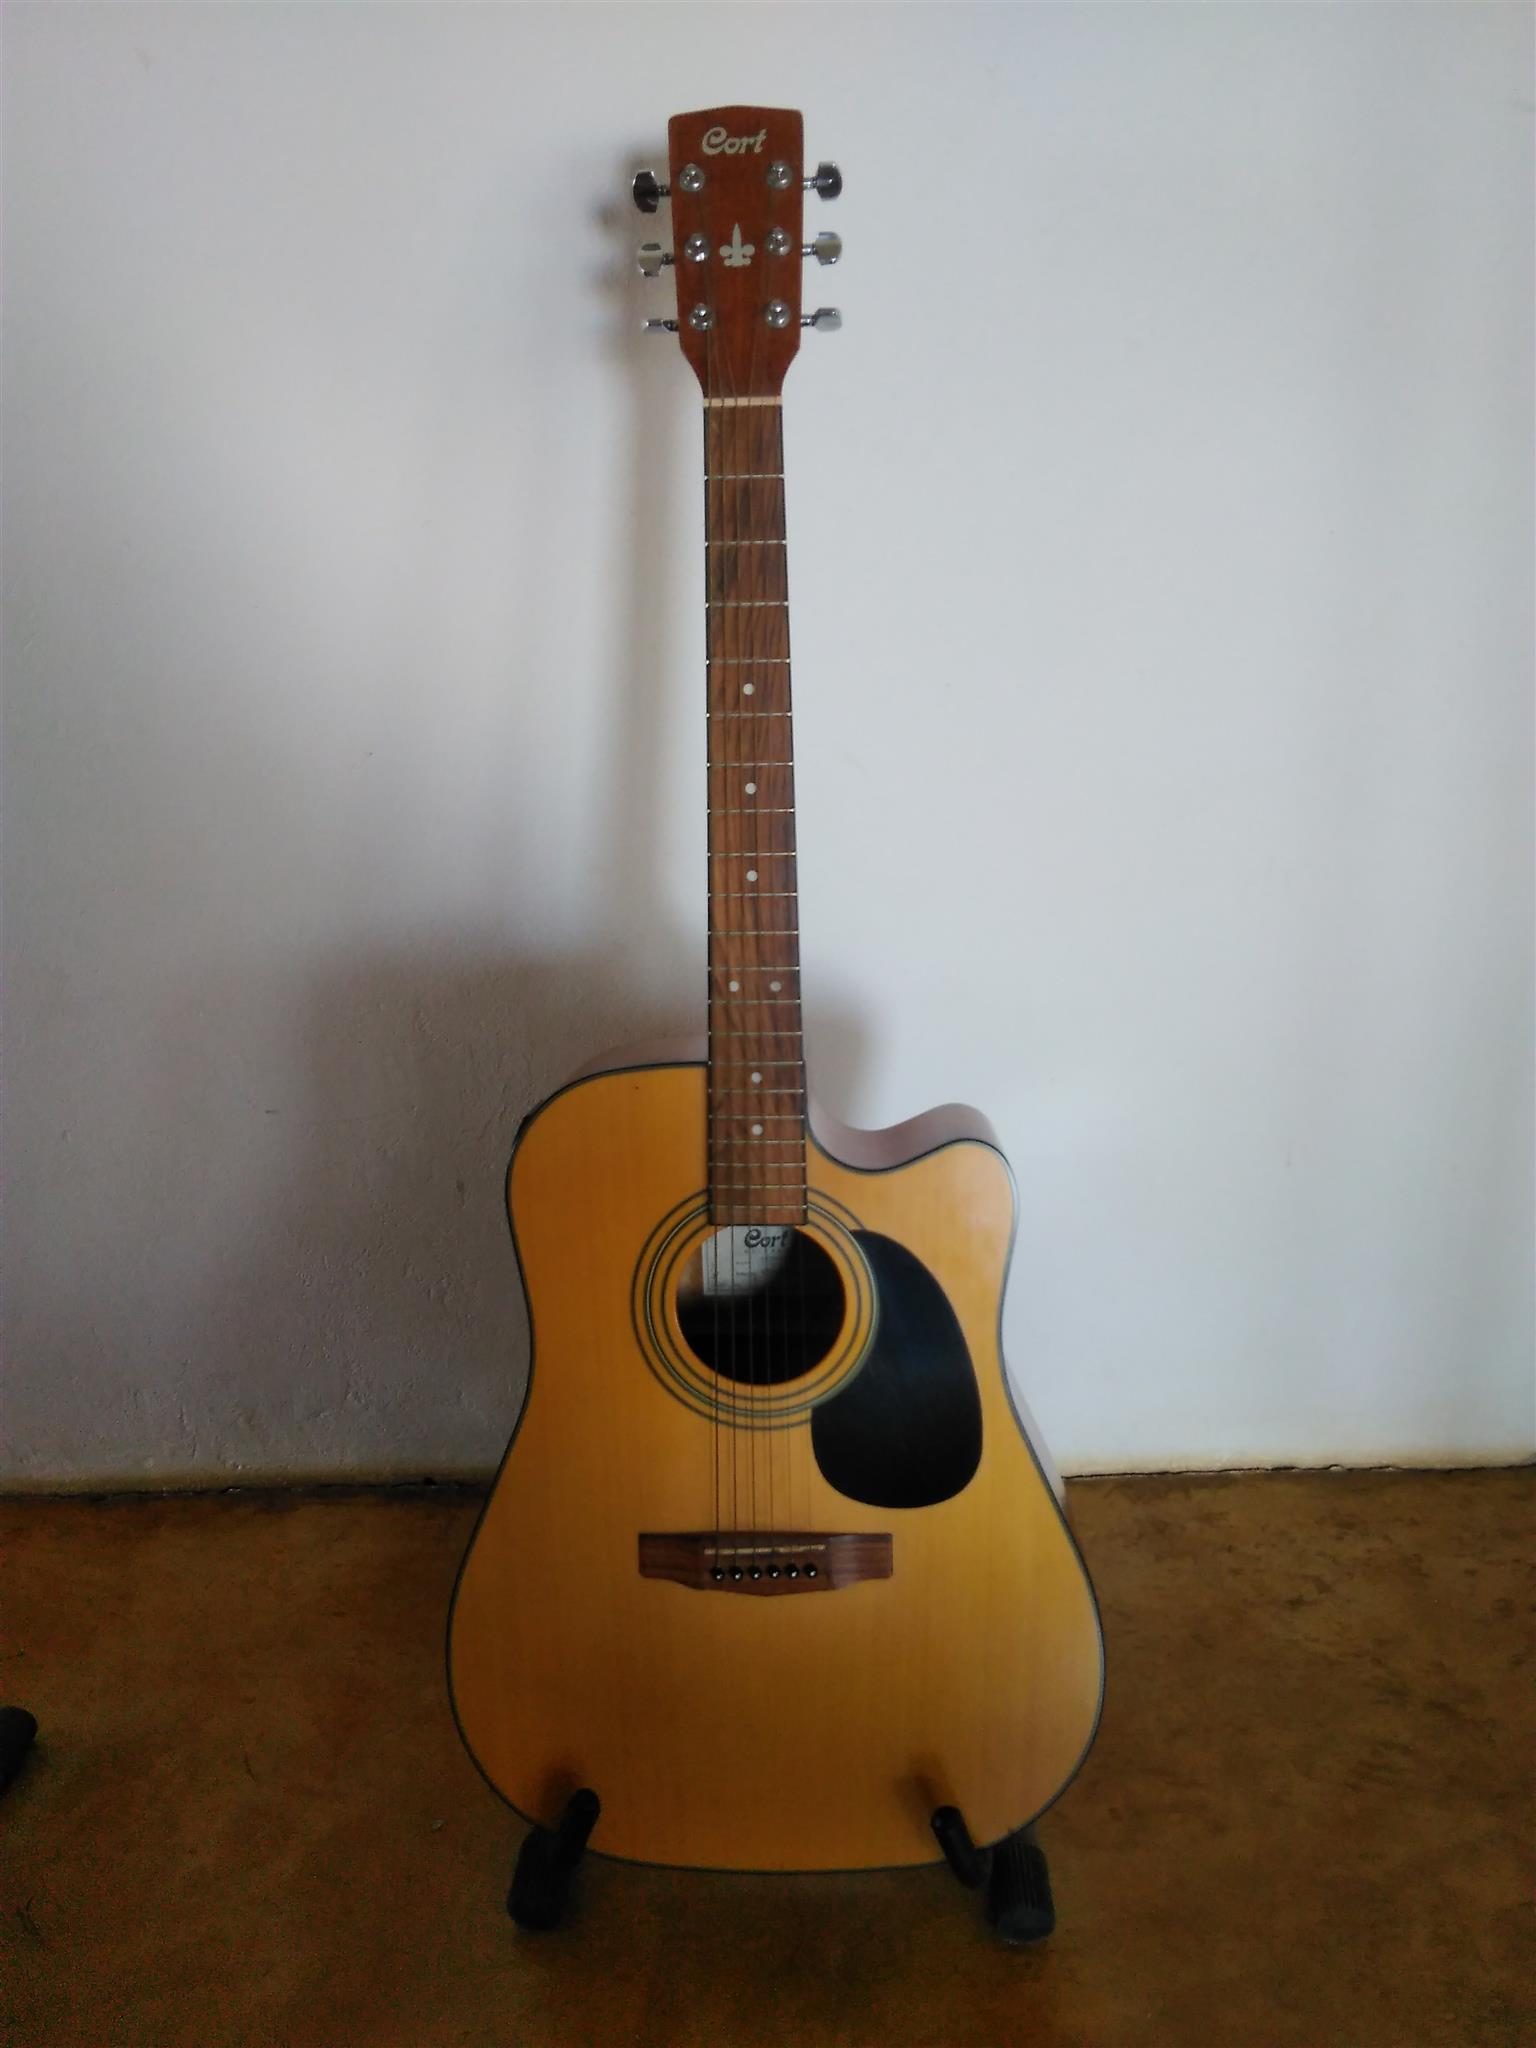 Cort guitar for sale